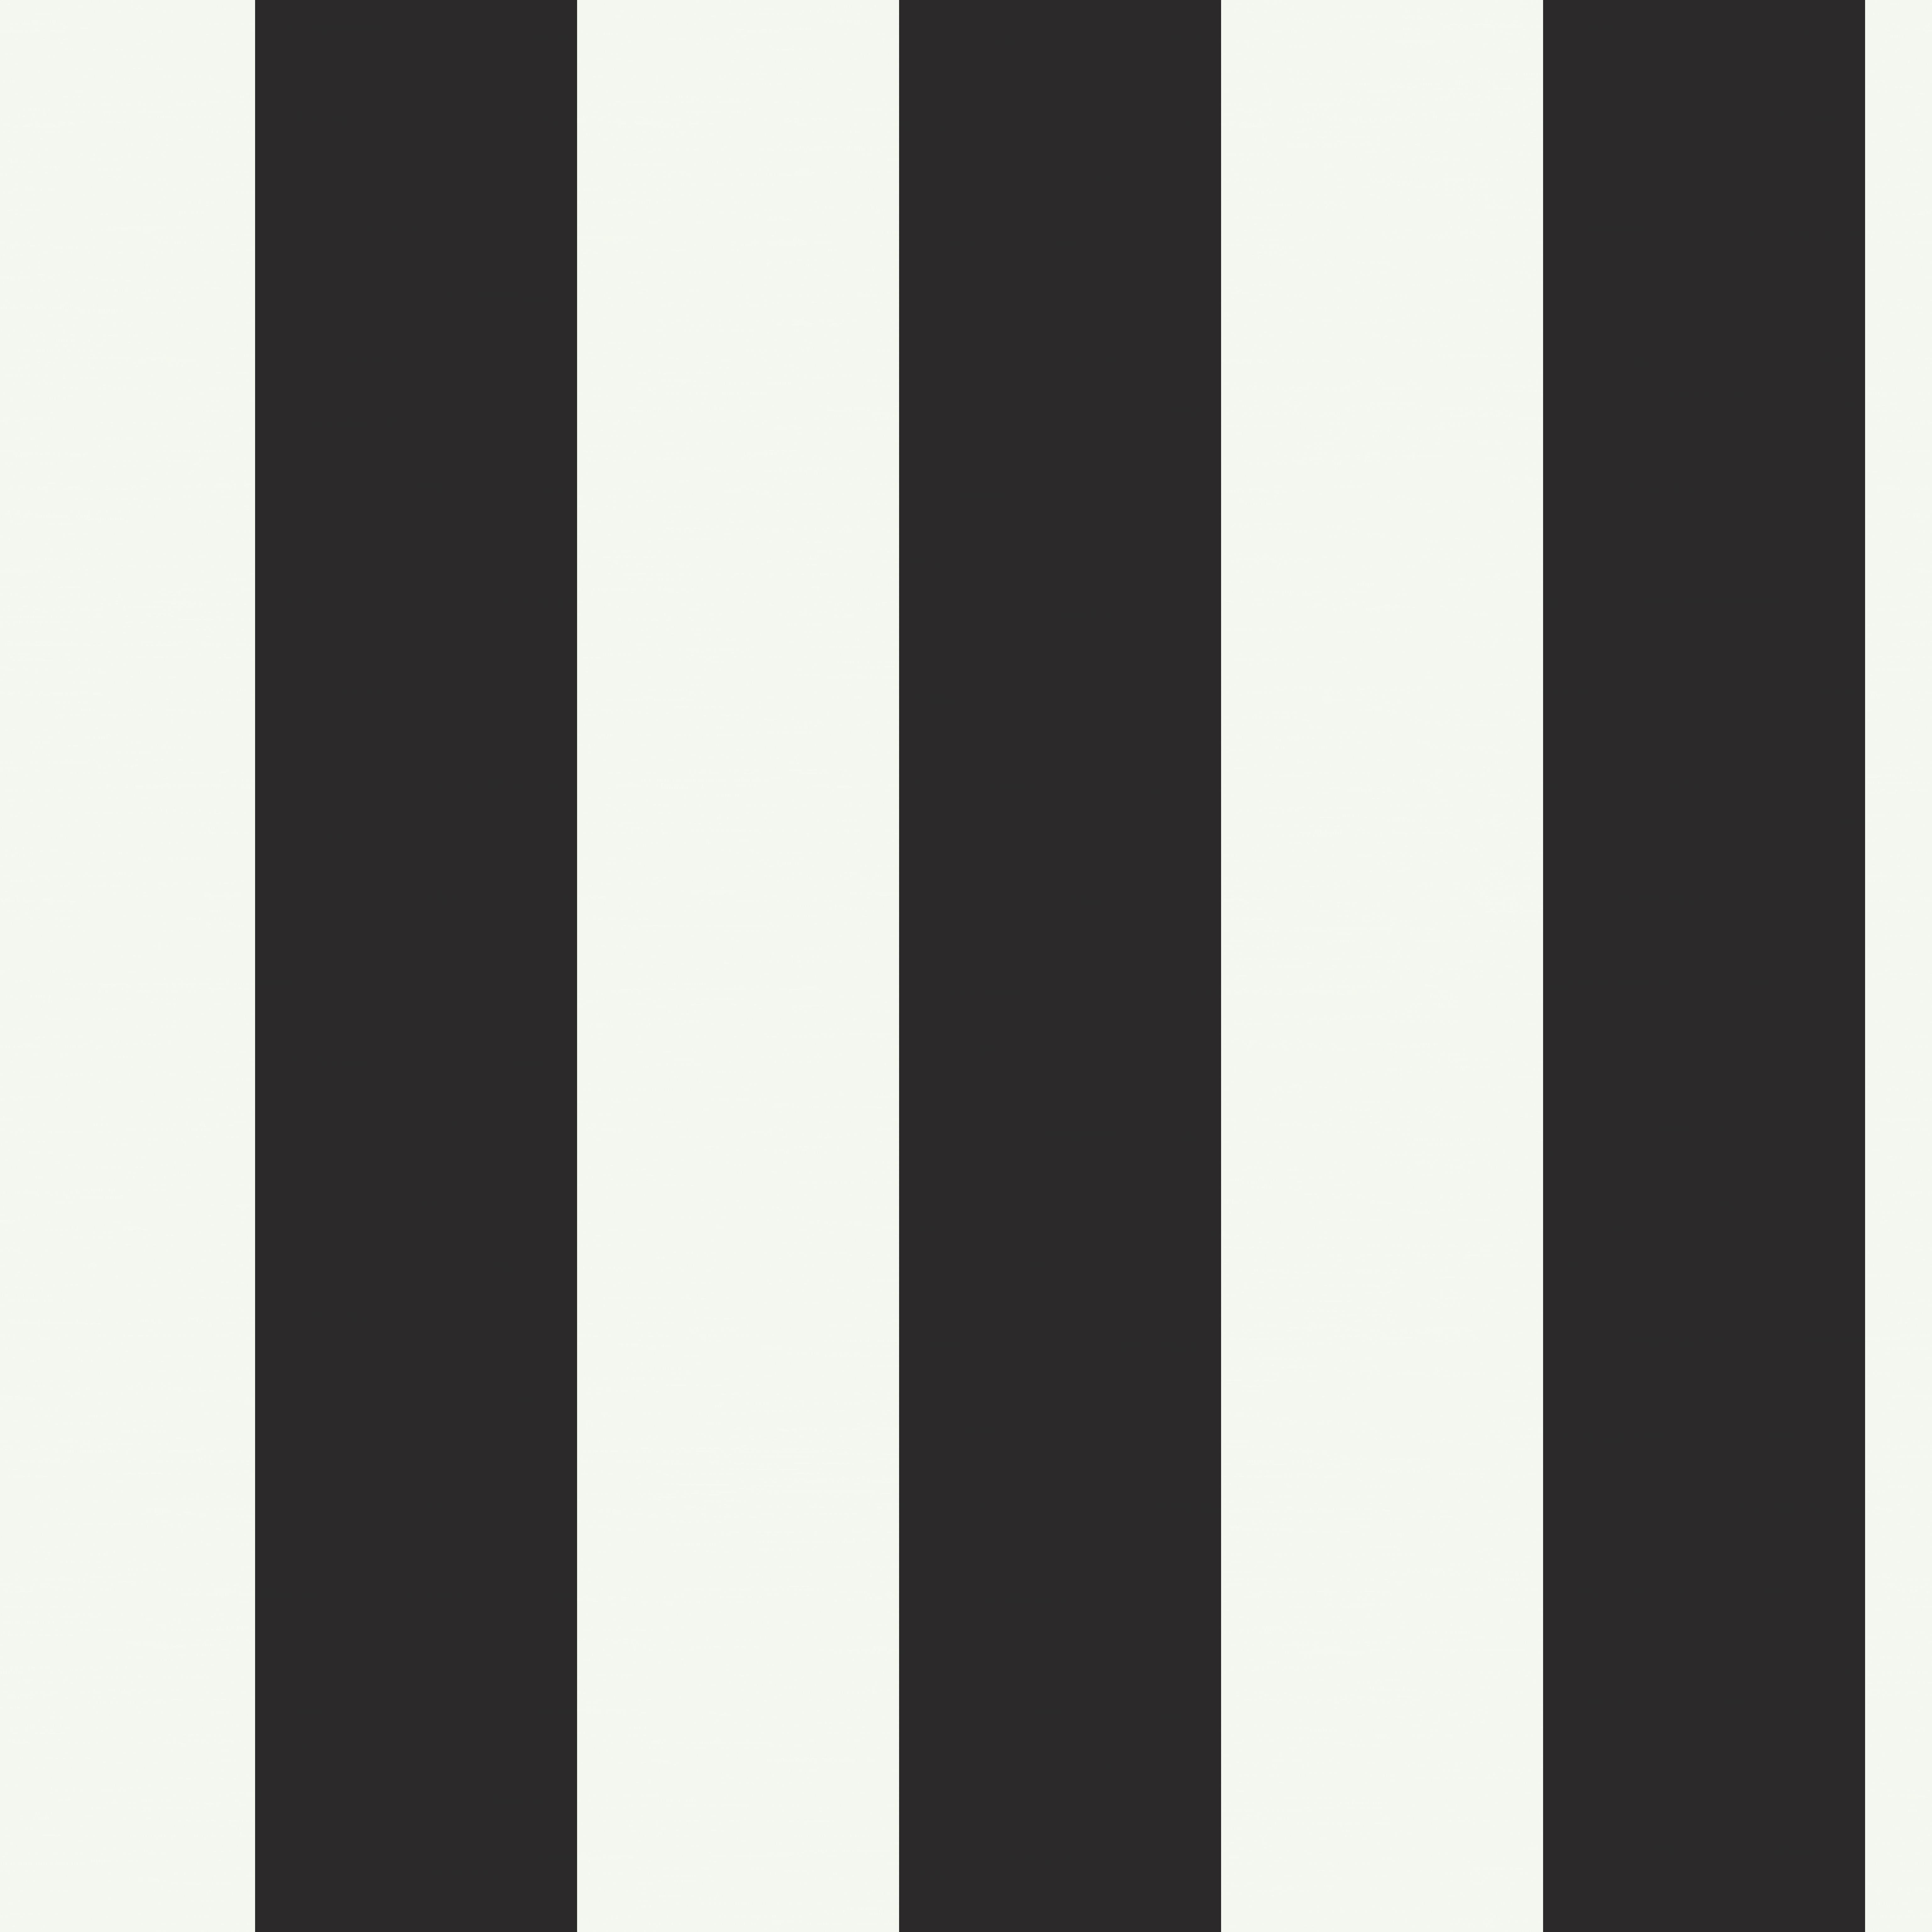 Wallpaper Black And White Stripes 6150x6150